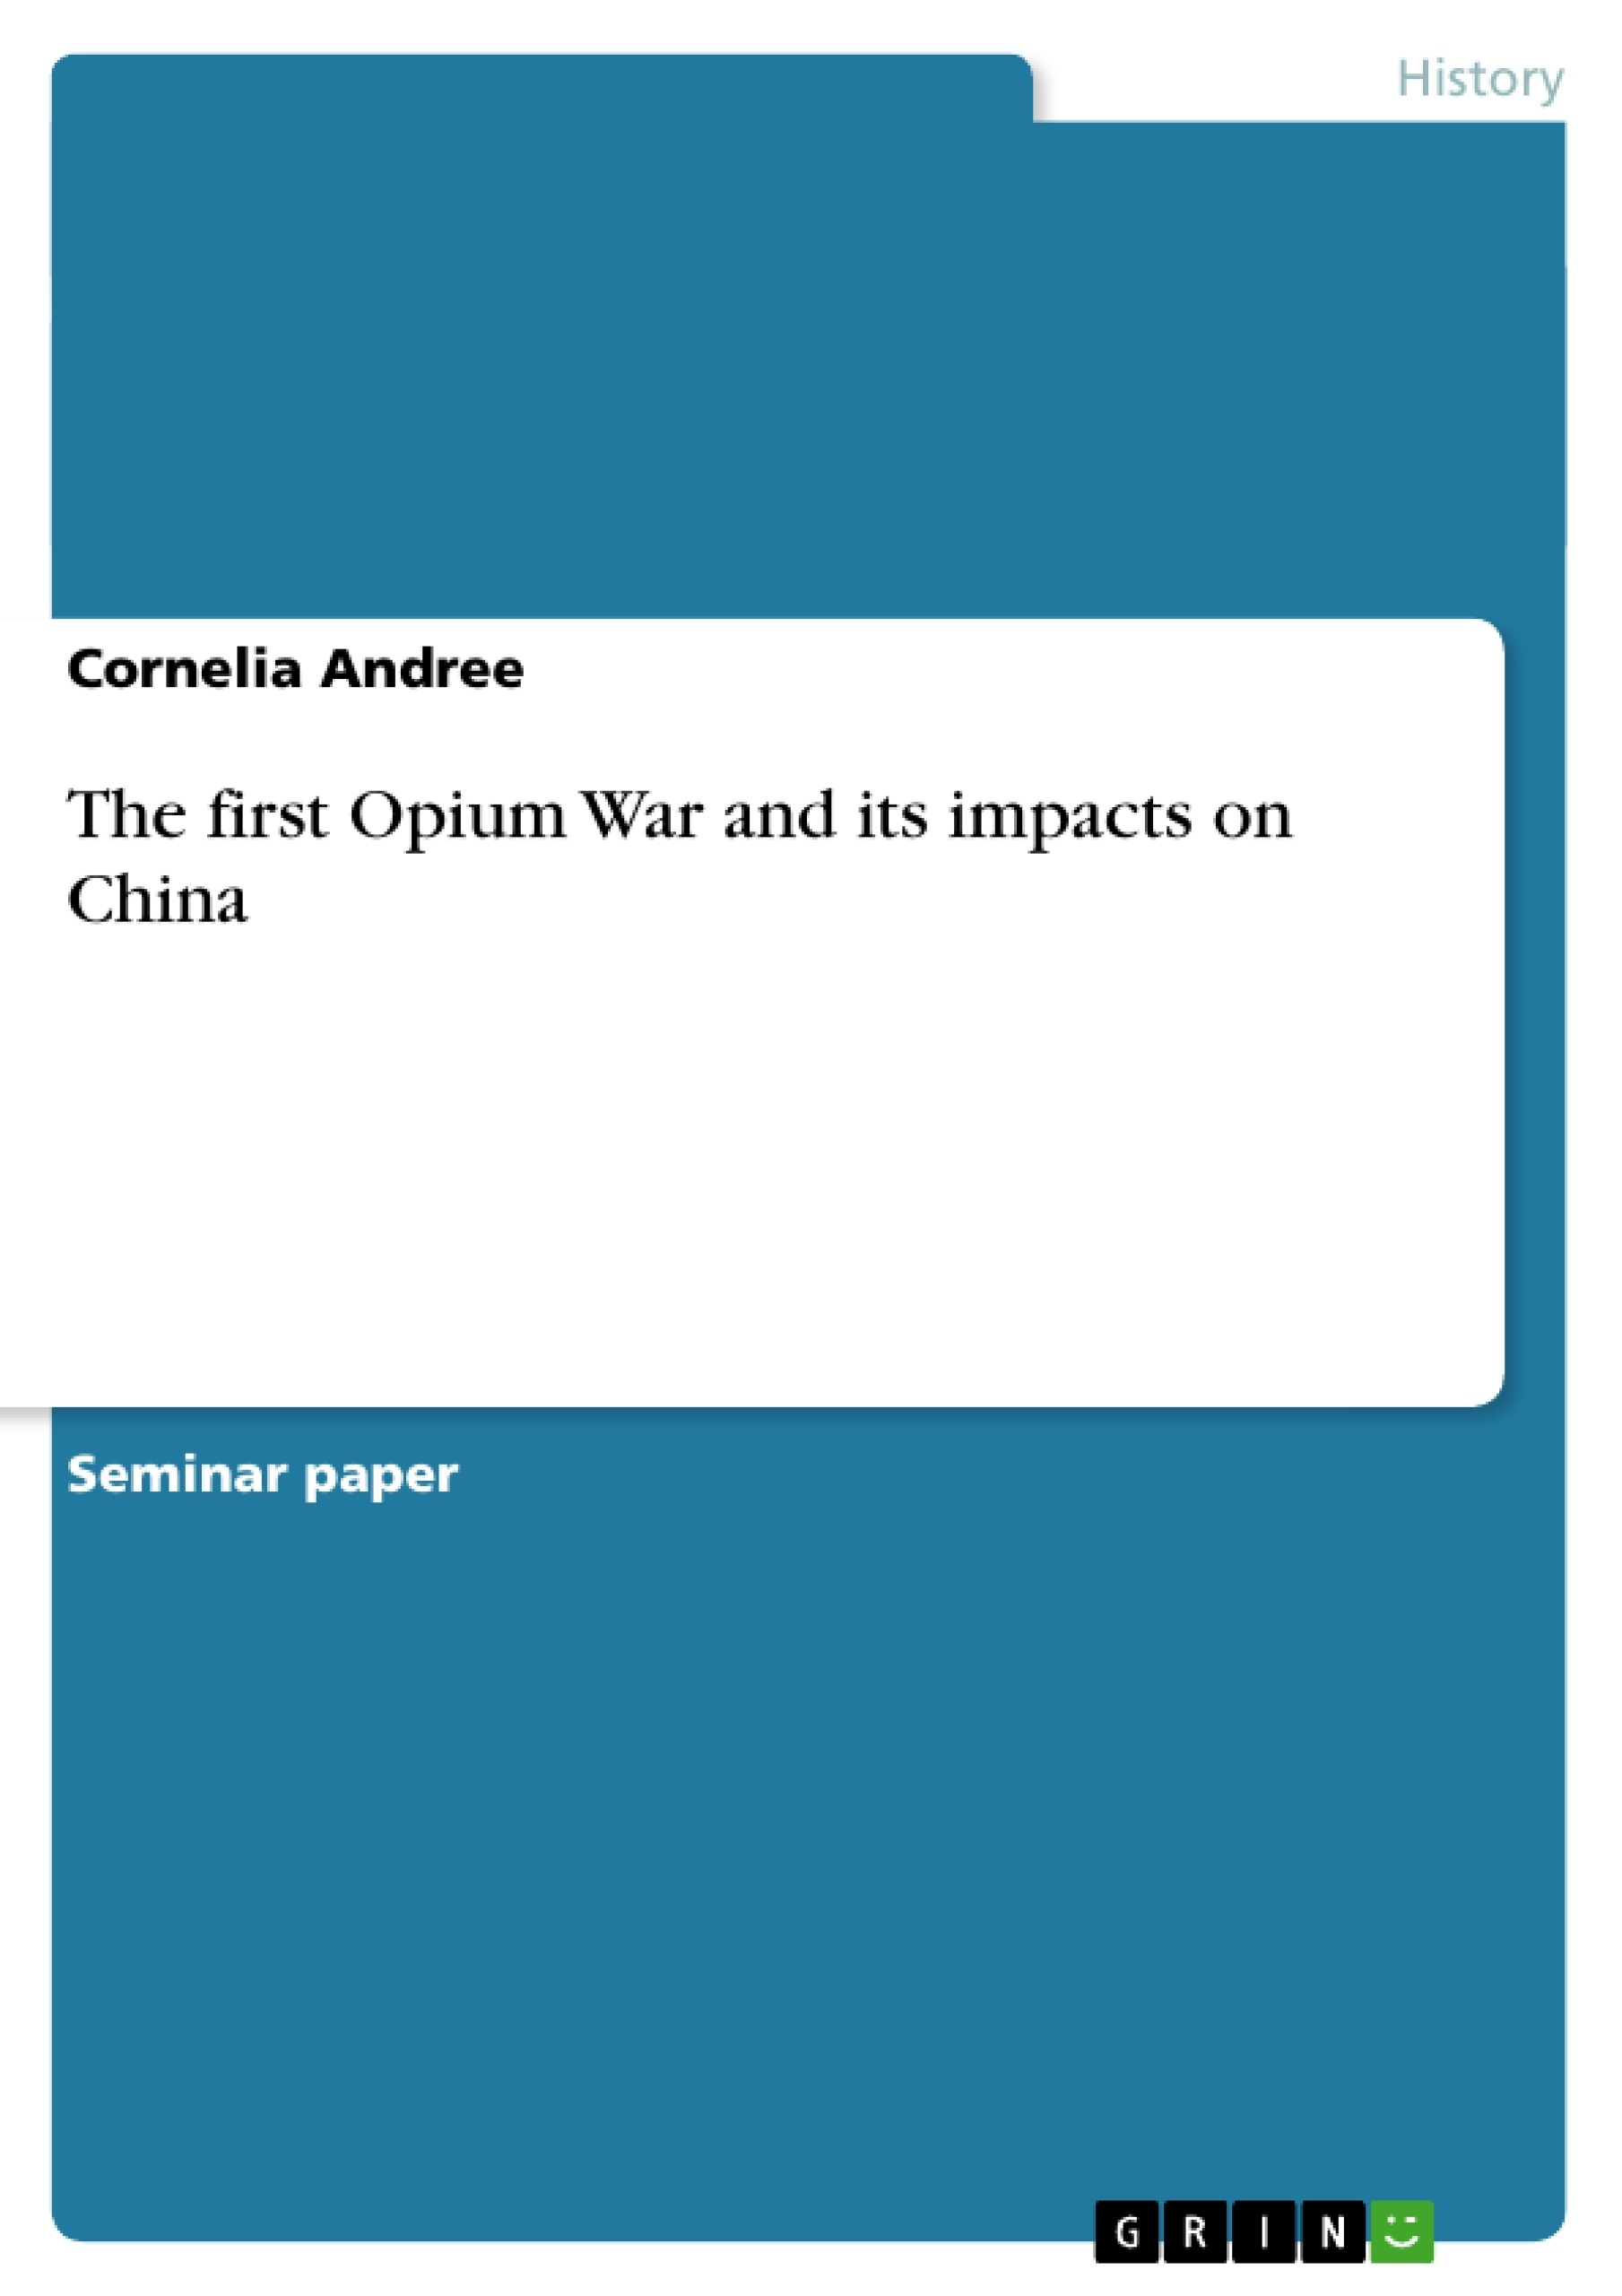 Title: The first Opium War and its impacts on China